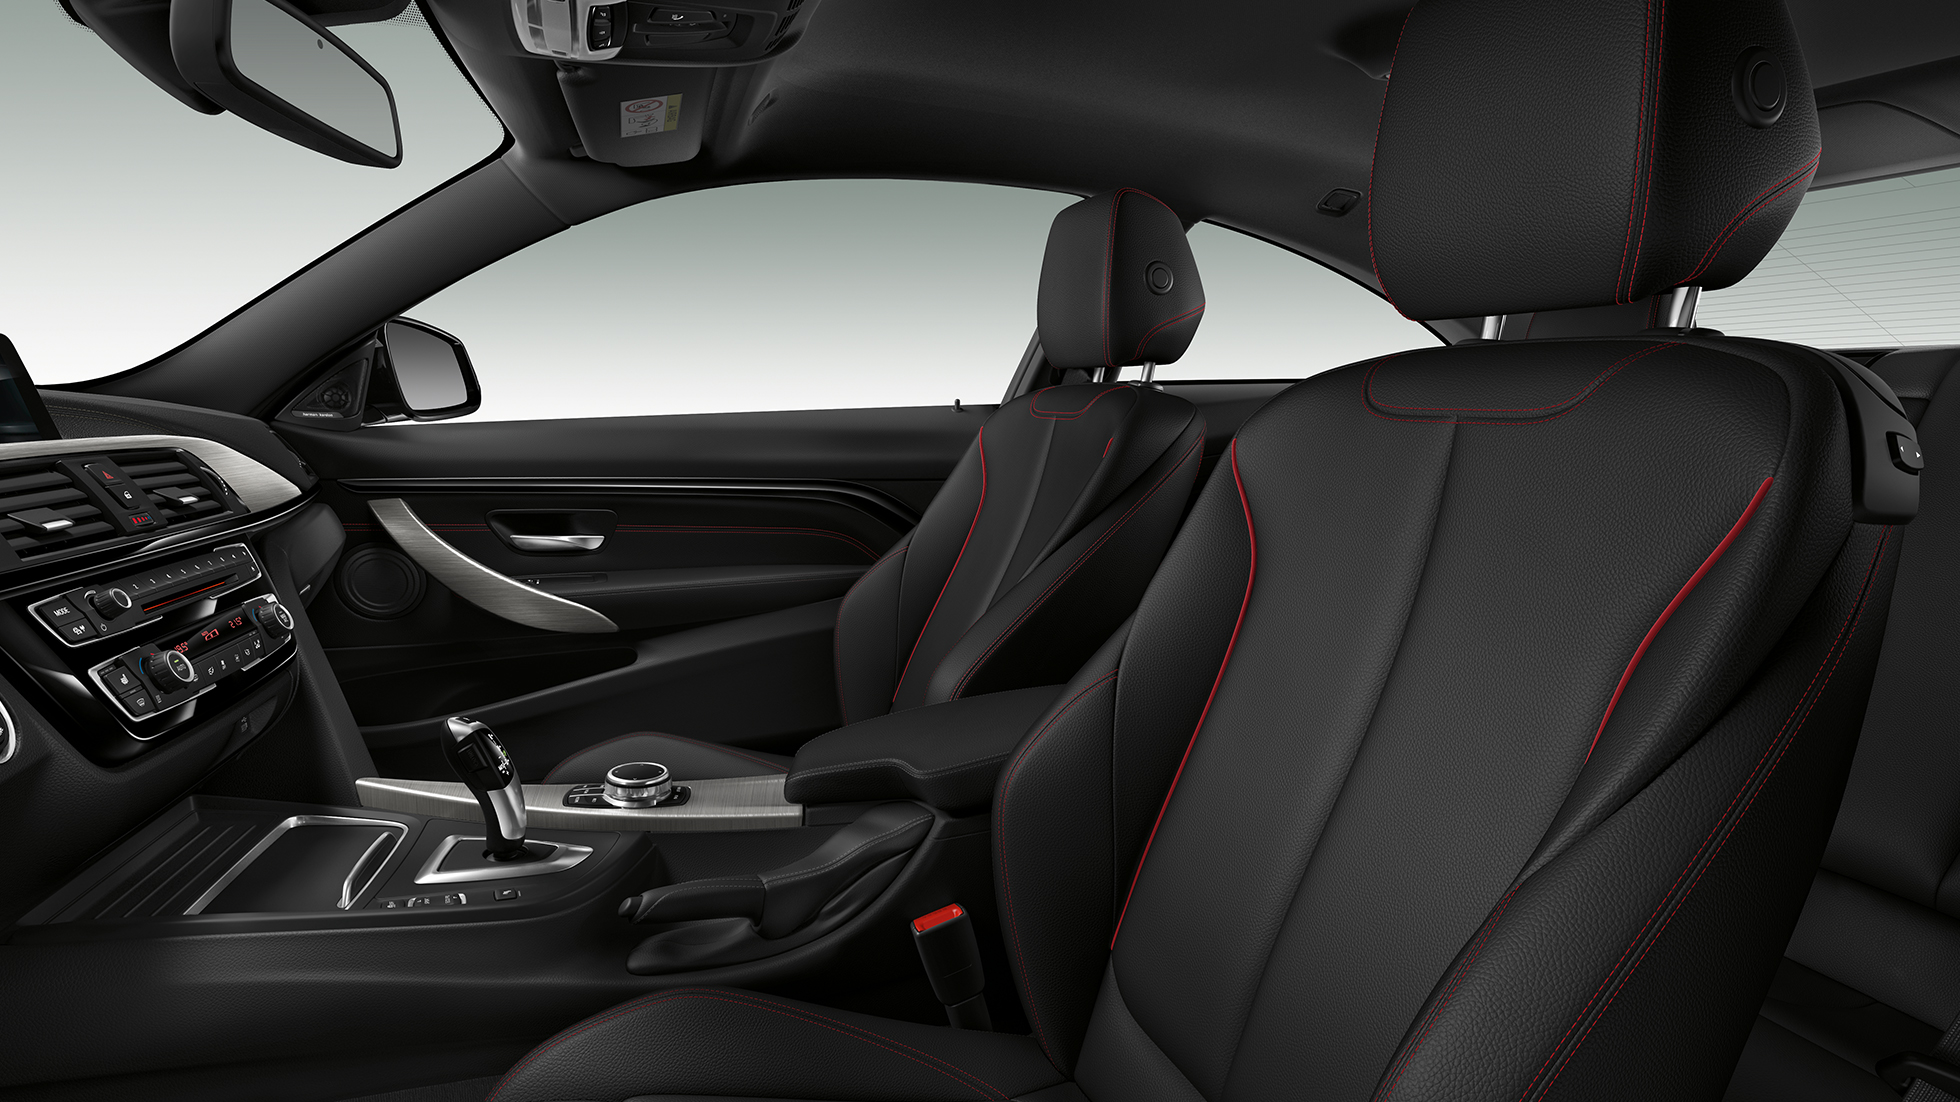 BMW 4 Series Coupé, Model Sport Line interior